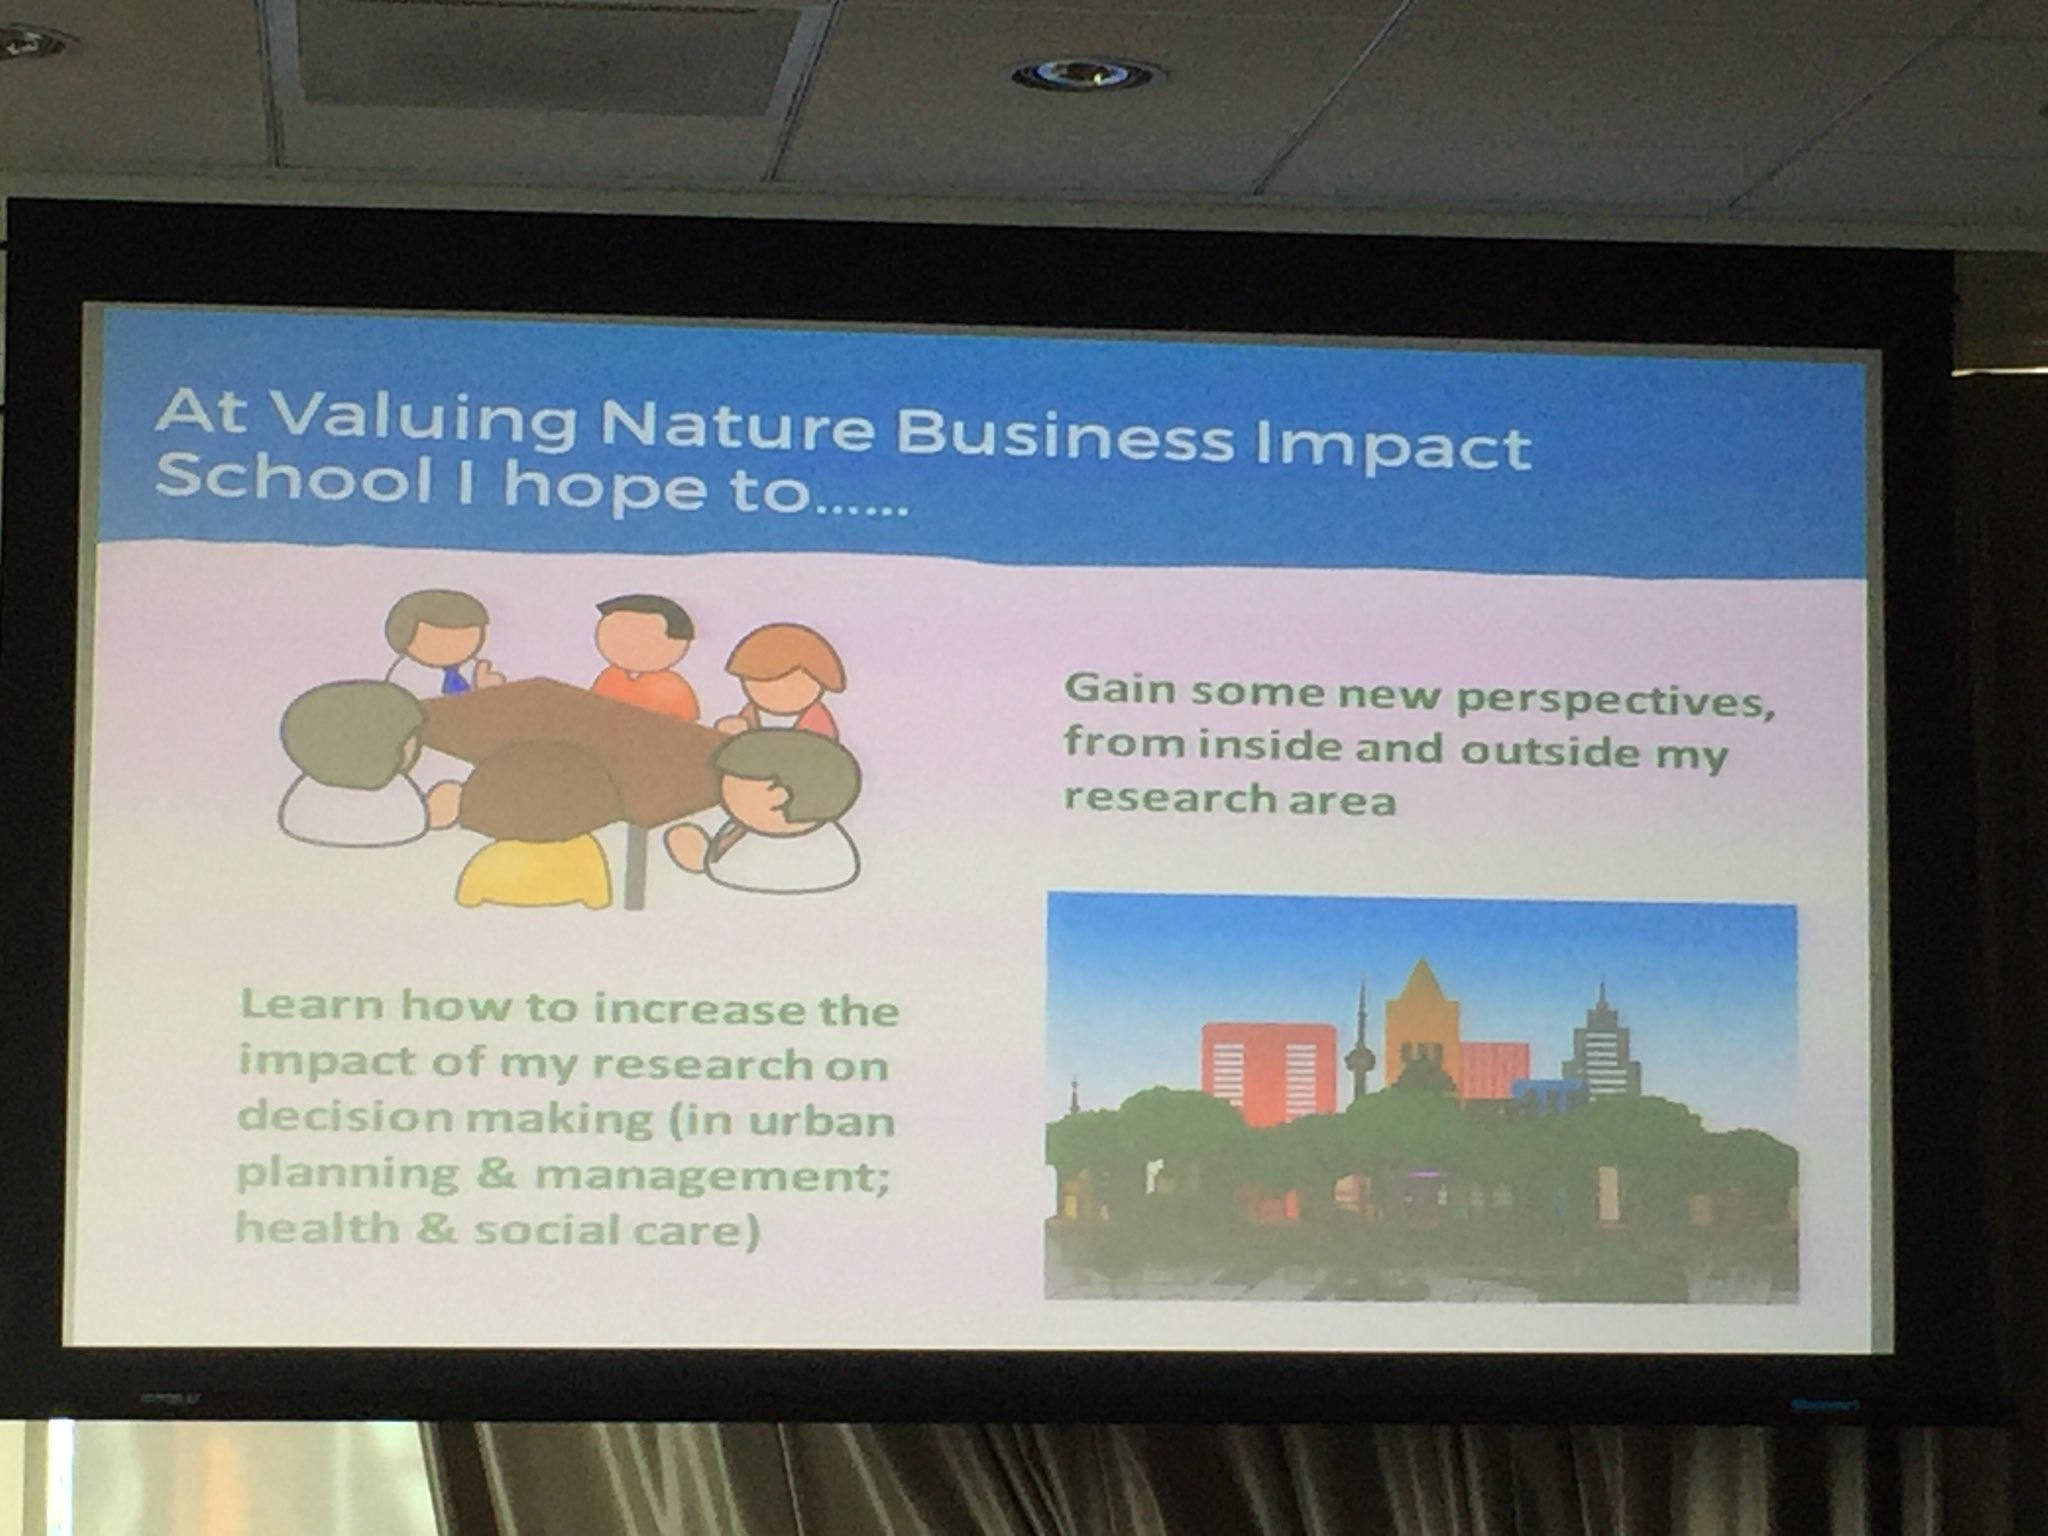 Why attend the Valuing Nature Business Impact School? @YvonneBlack76 tells us why.... #VNBIS17 https://t.co/js1Zf6Bydh